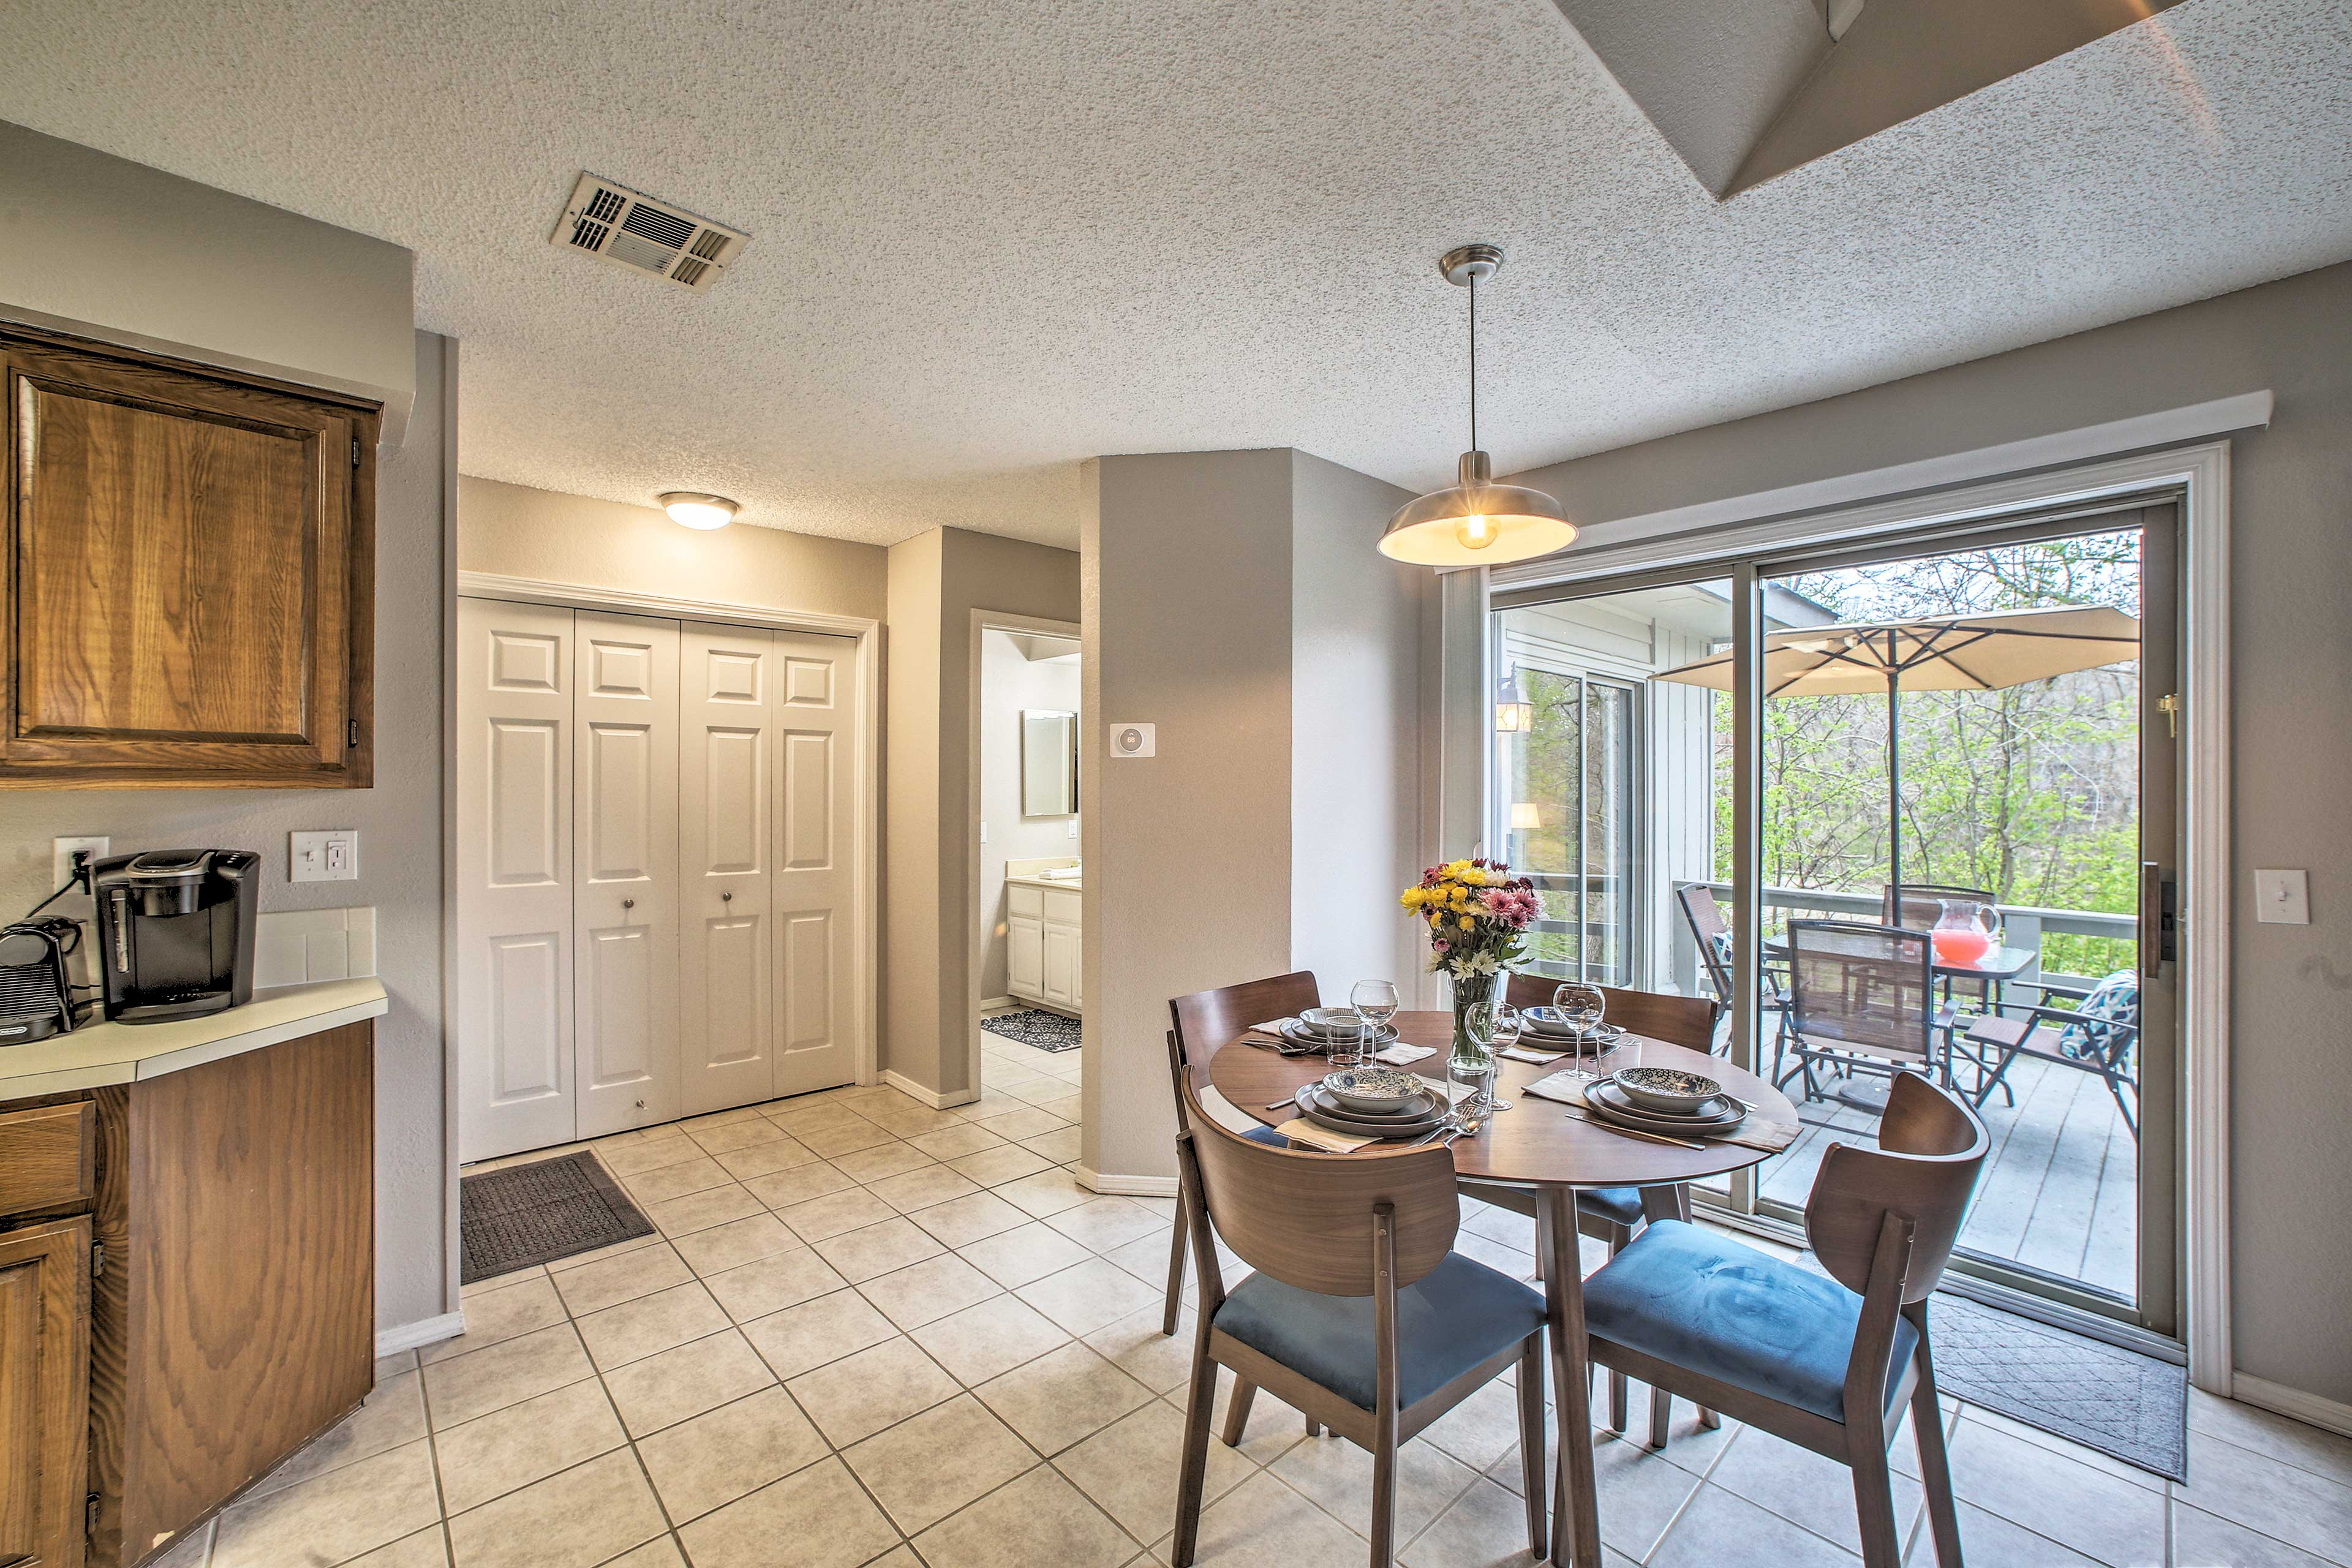 The balcony and one of the bathrooms is located off of this main living space.